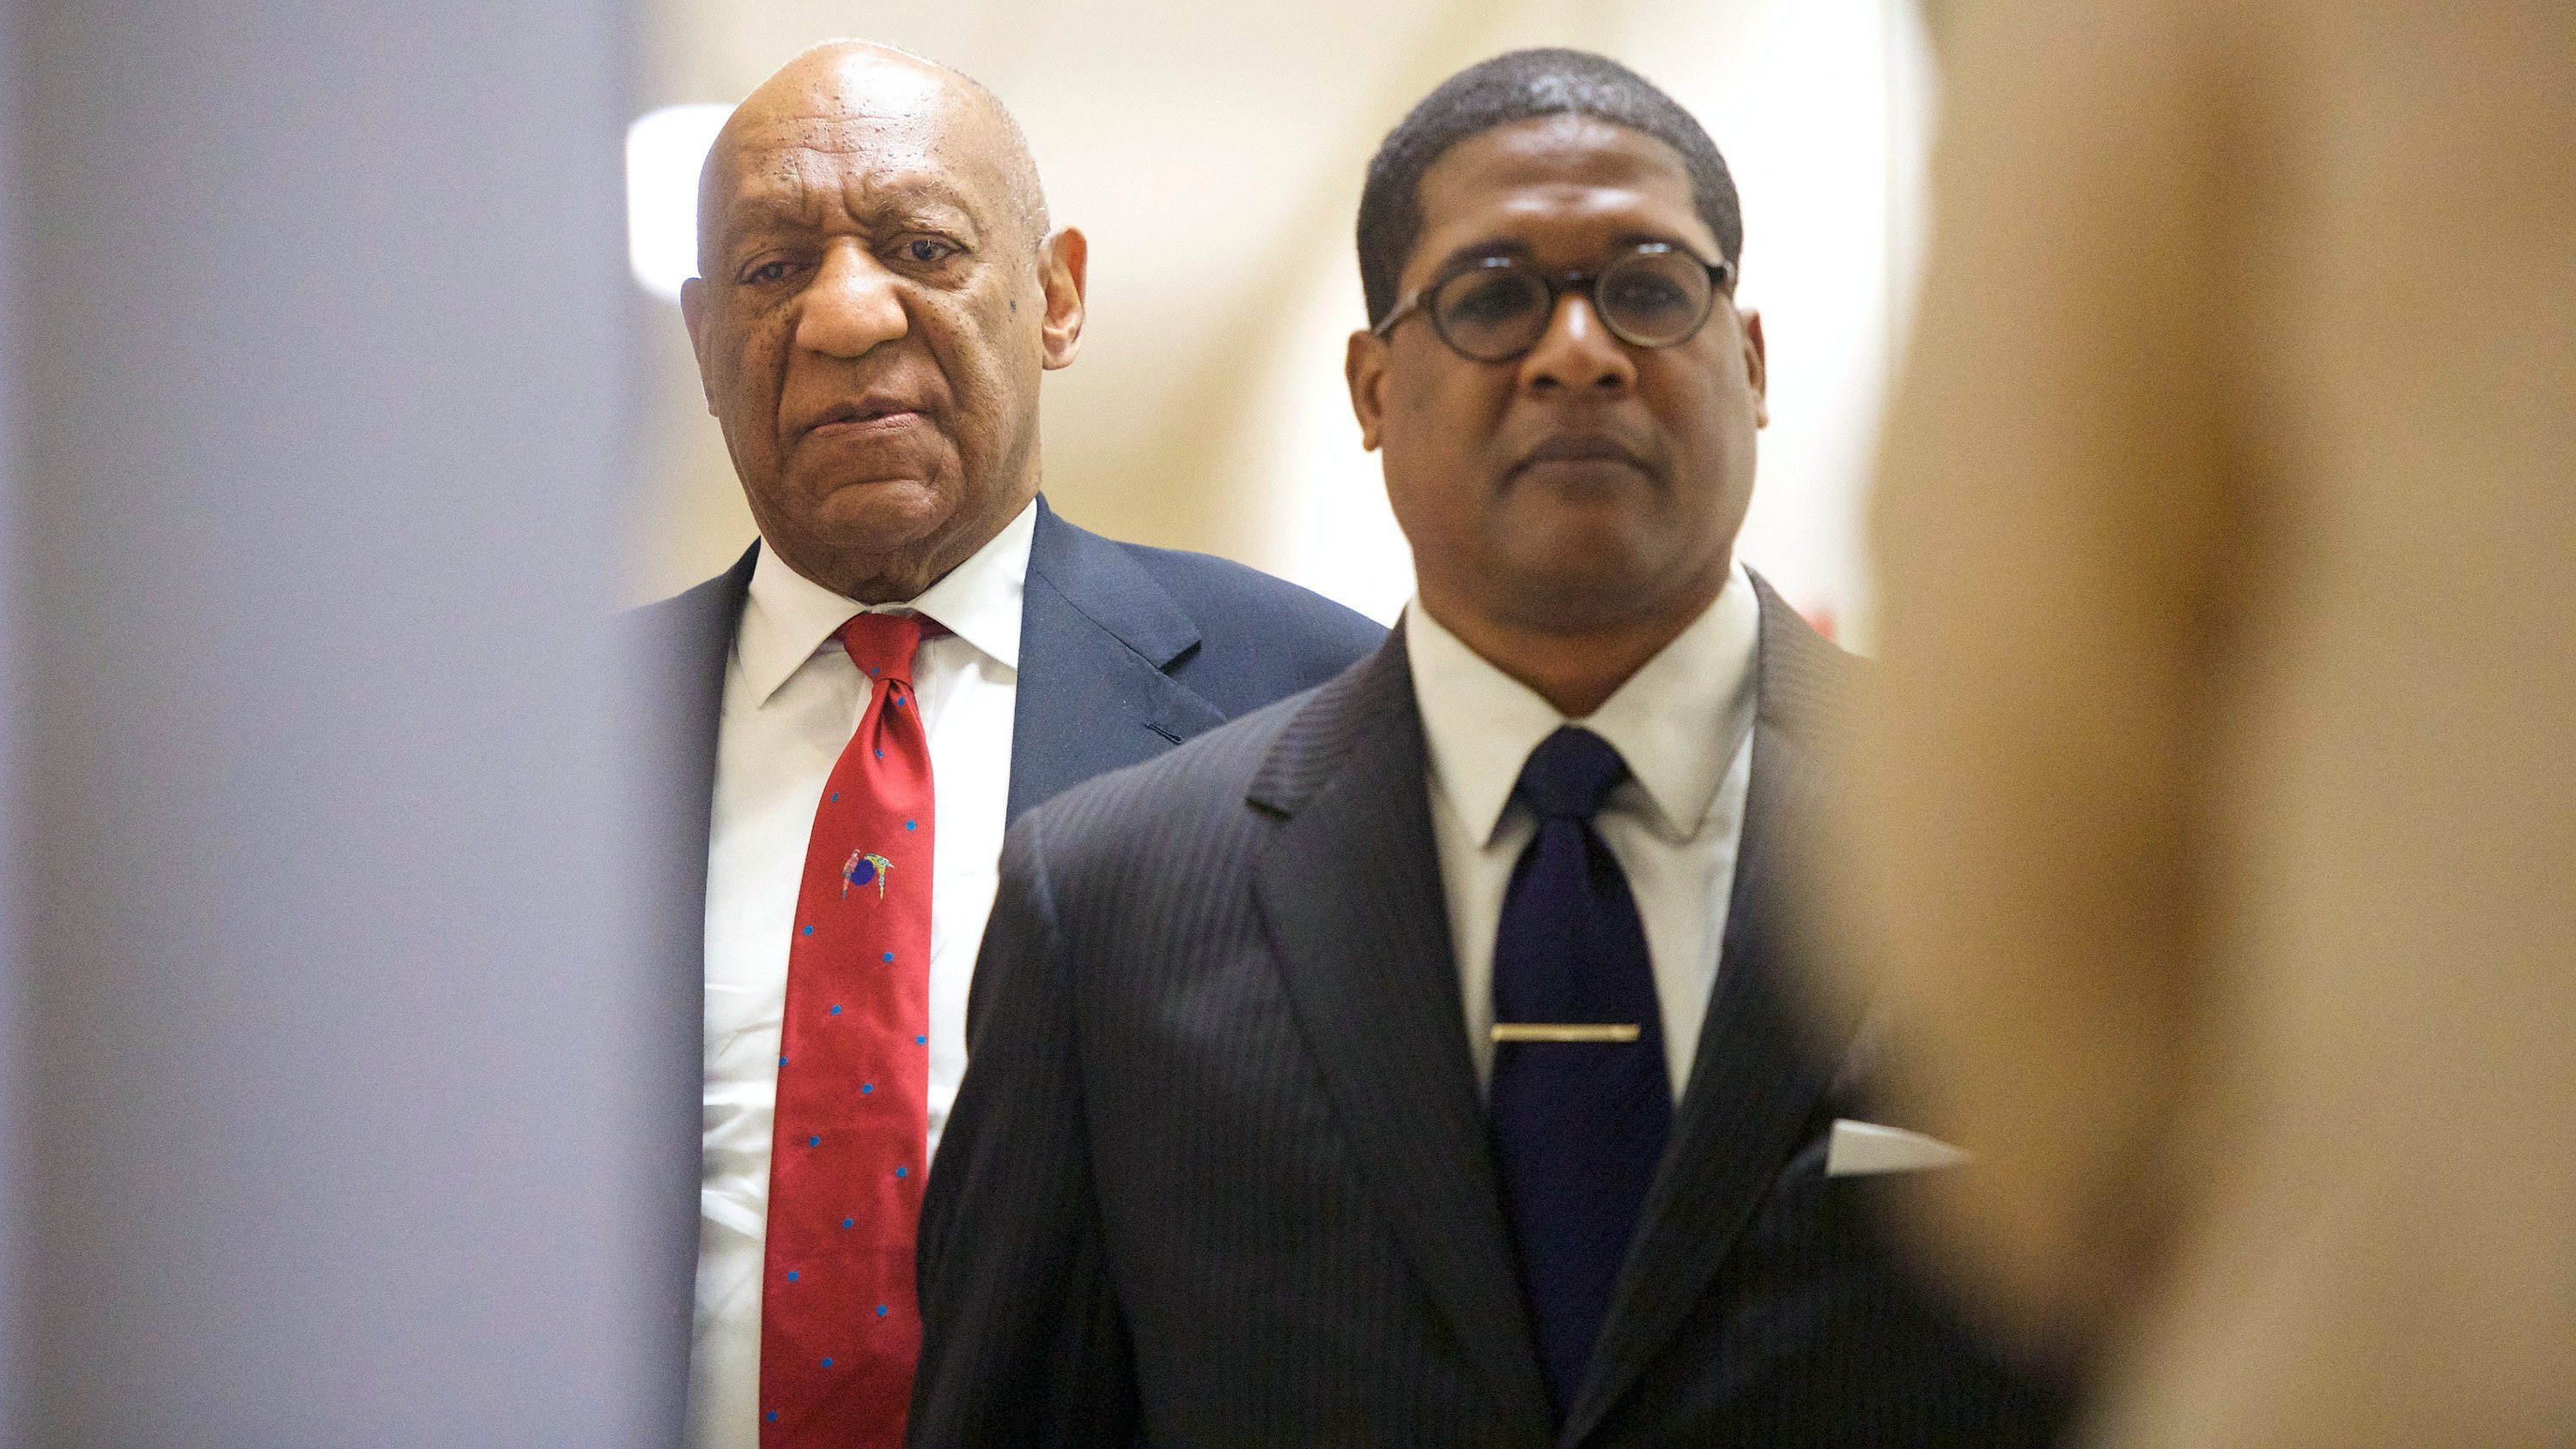 Bill Cosby to be sentenced in September, judge rules